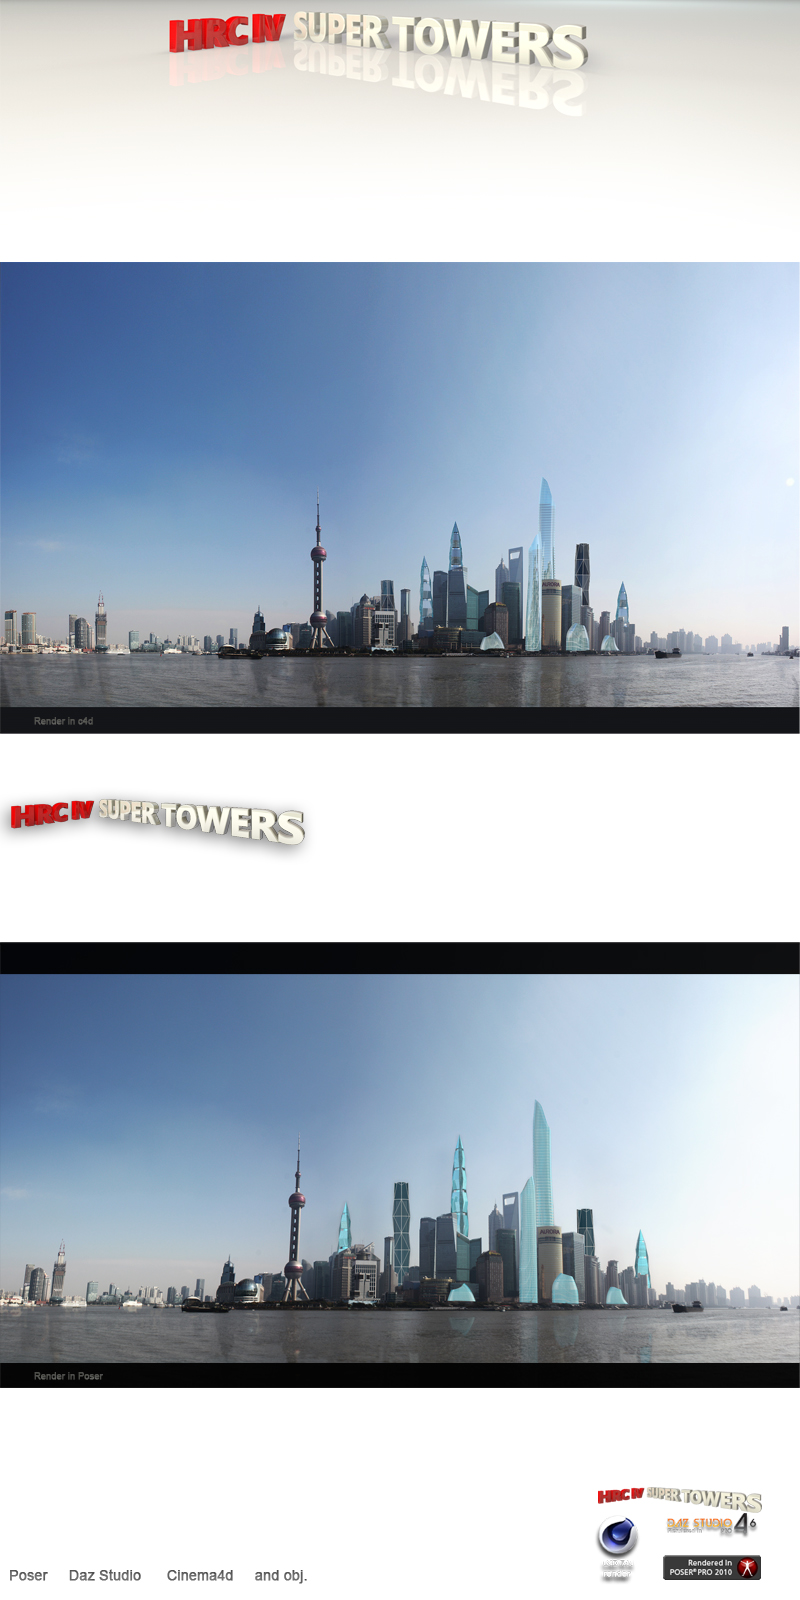 hrclV Super Towers